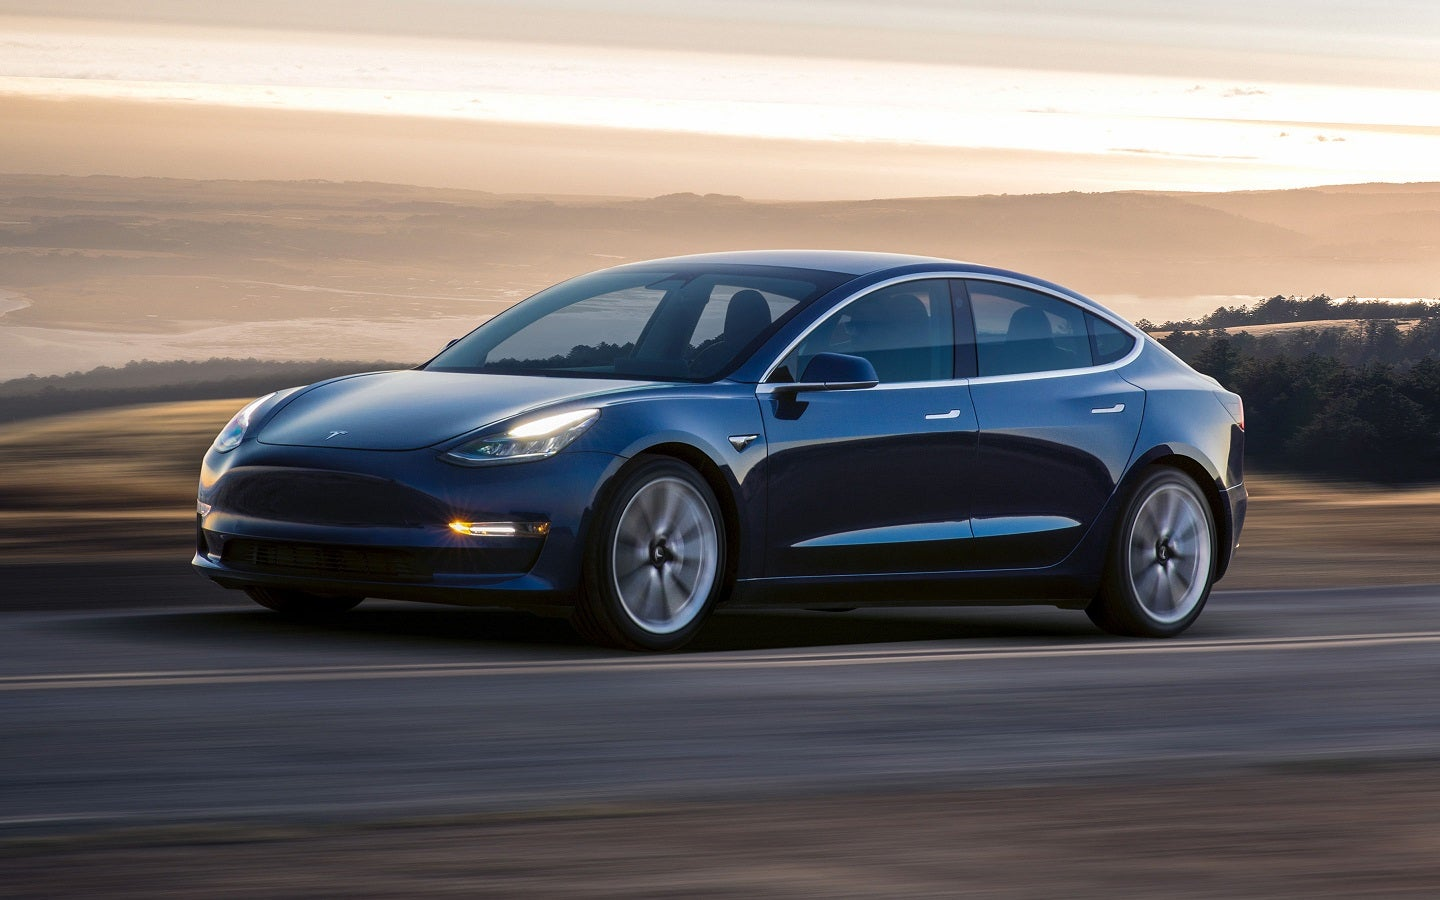 Dark-colored Model 3 sedan on a road in front of a hazy, picturesque landscape.